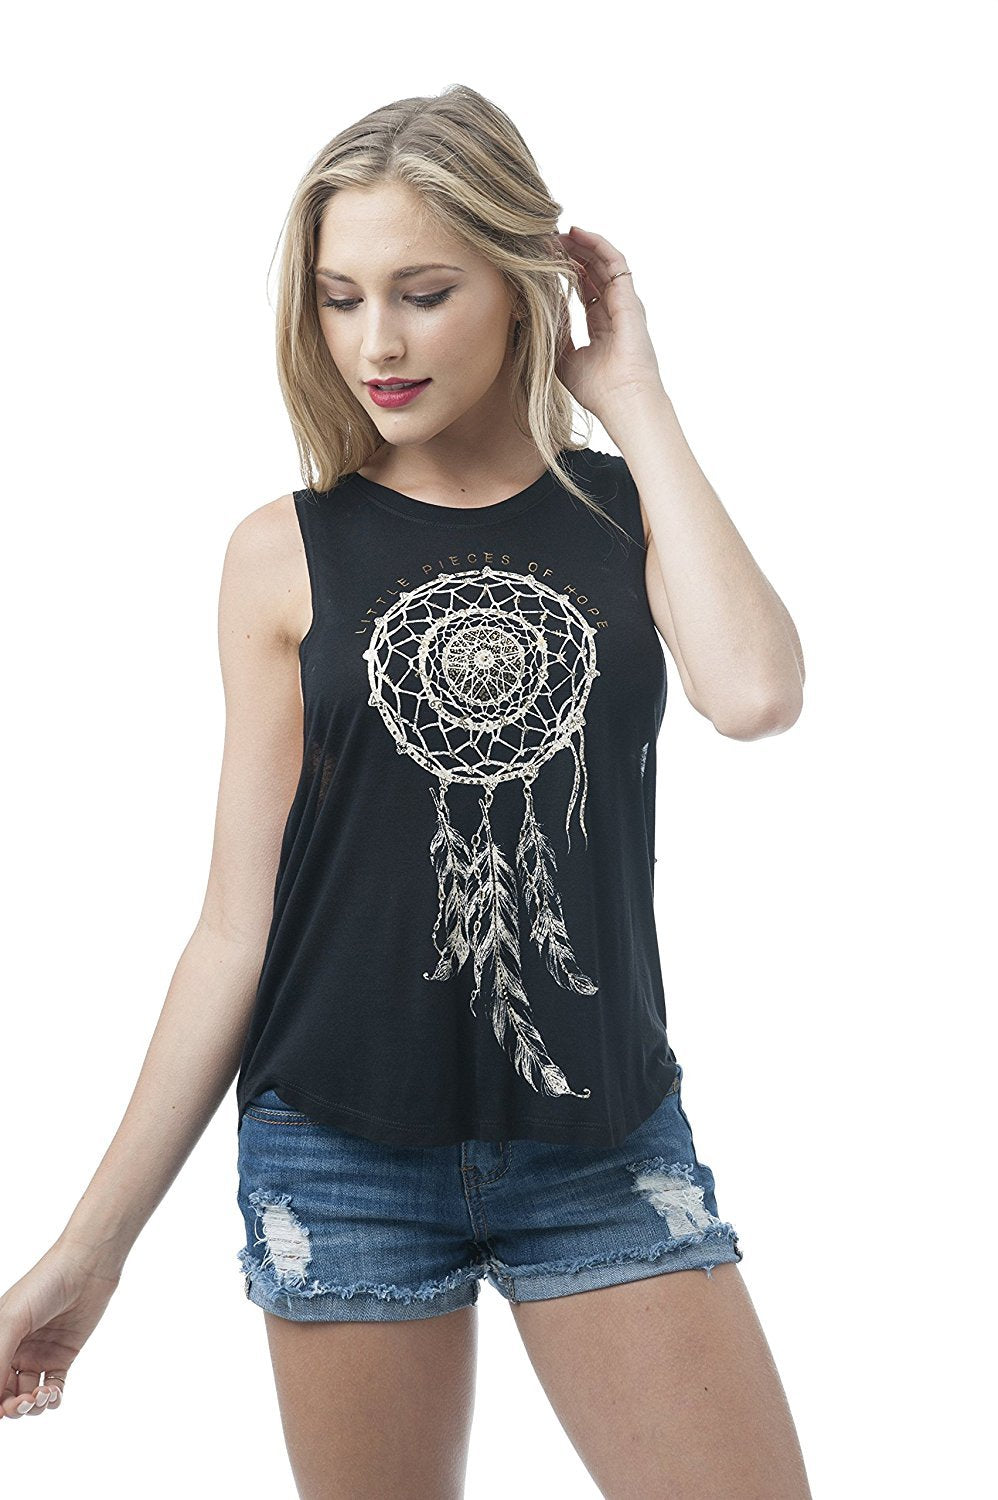 Khanomak Women's Sleeveless Shirt Tank Top Graphic Tees